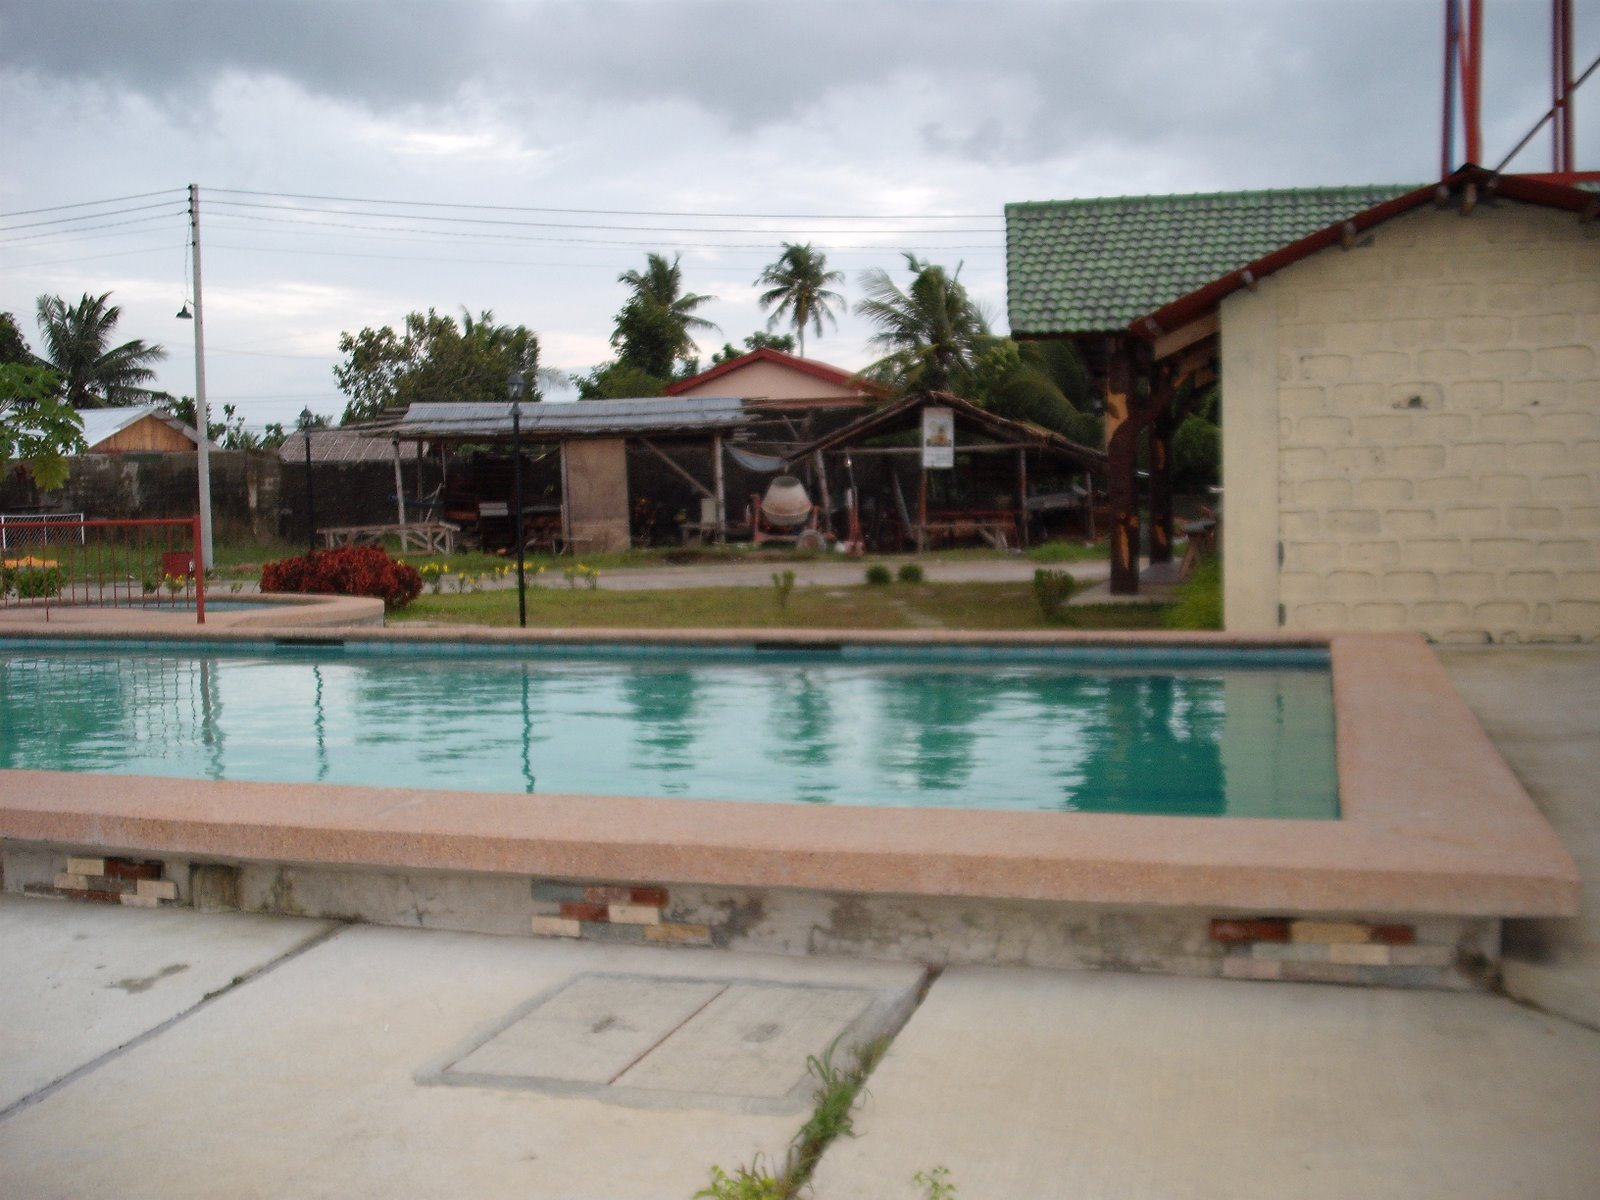 Royal residence iloilo by pansol realty and development corp in brgy sta cruz villa arevalo for Cost of swimming pool construction in philippines